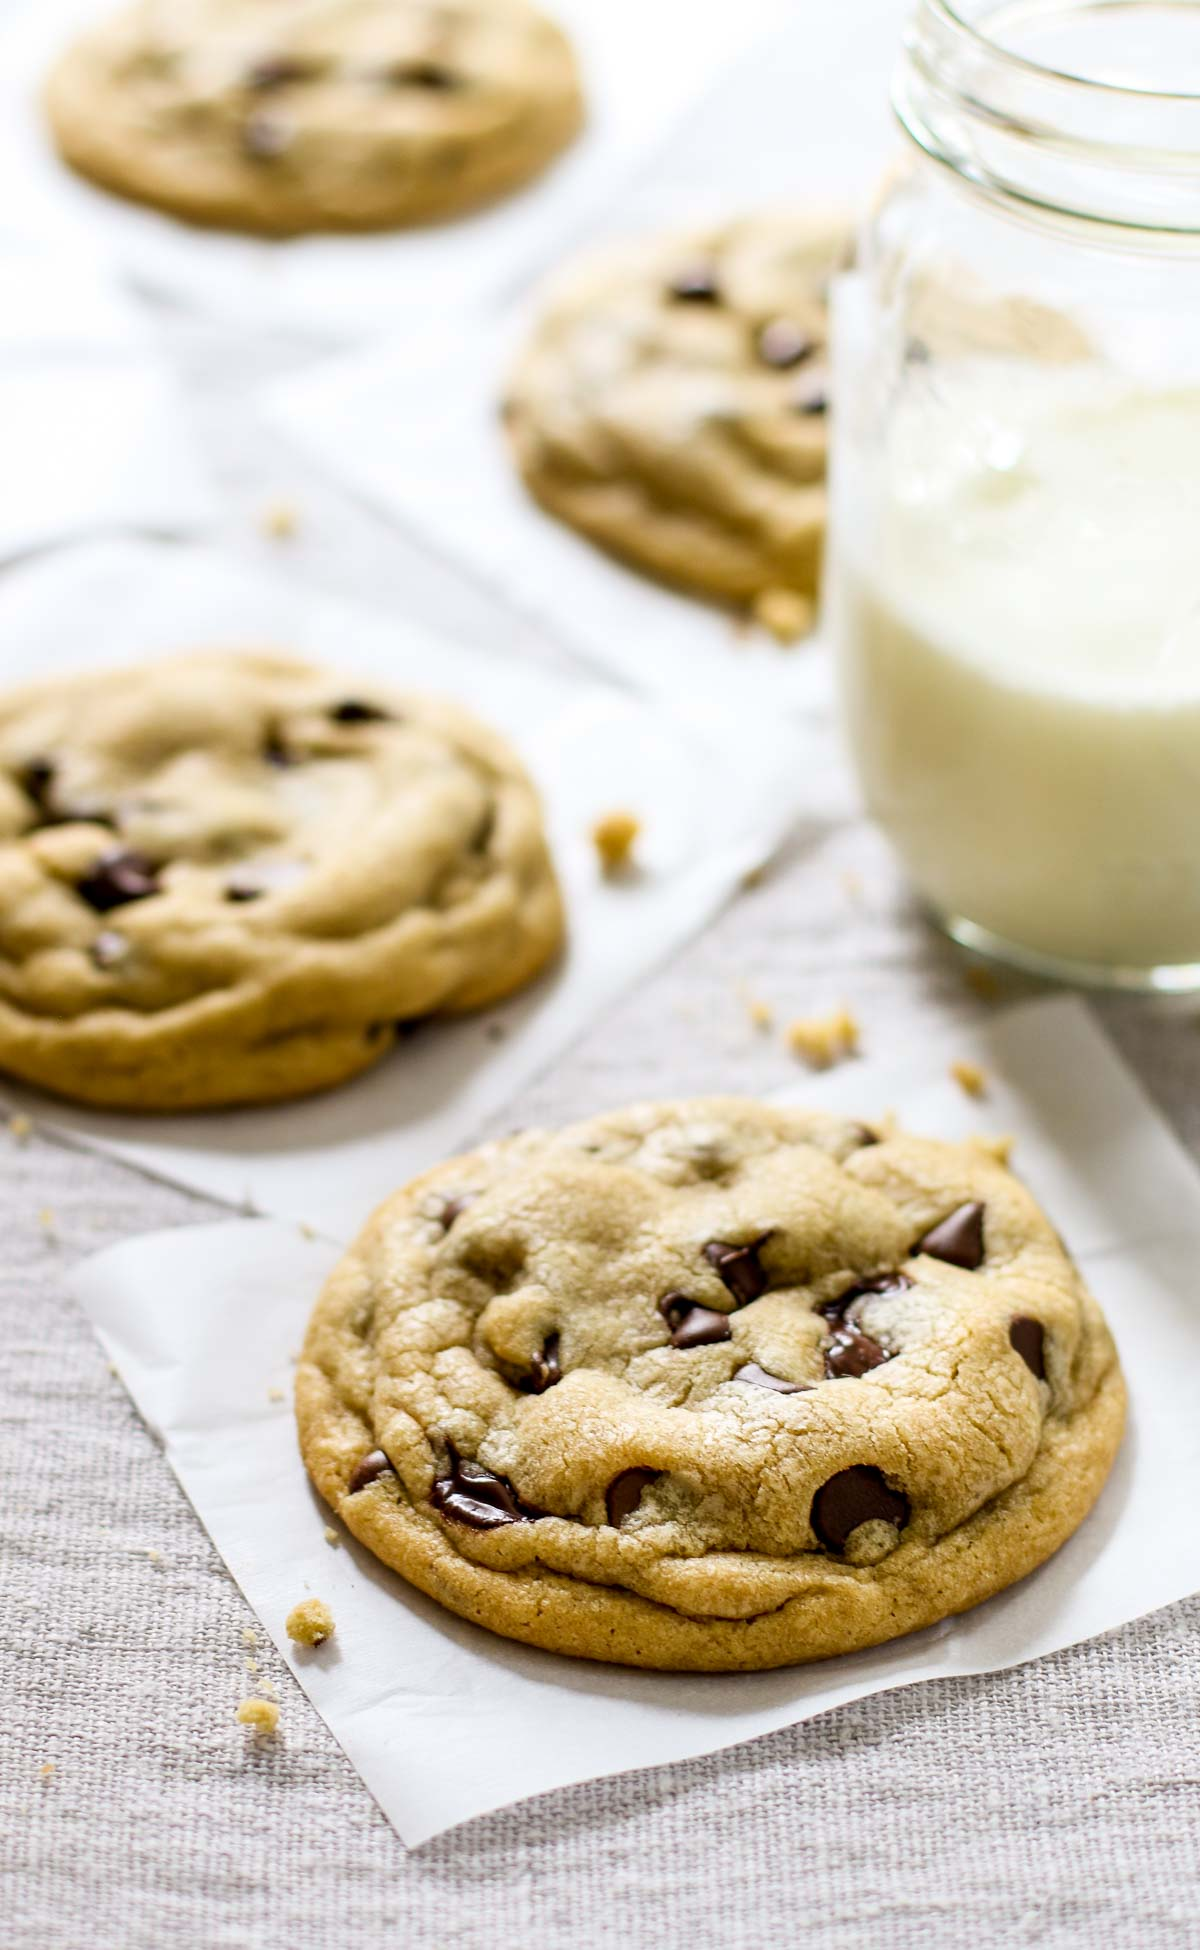 15 Of The Best Chocolate Chip Cookie Recipes The Sweetest Occasion